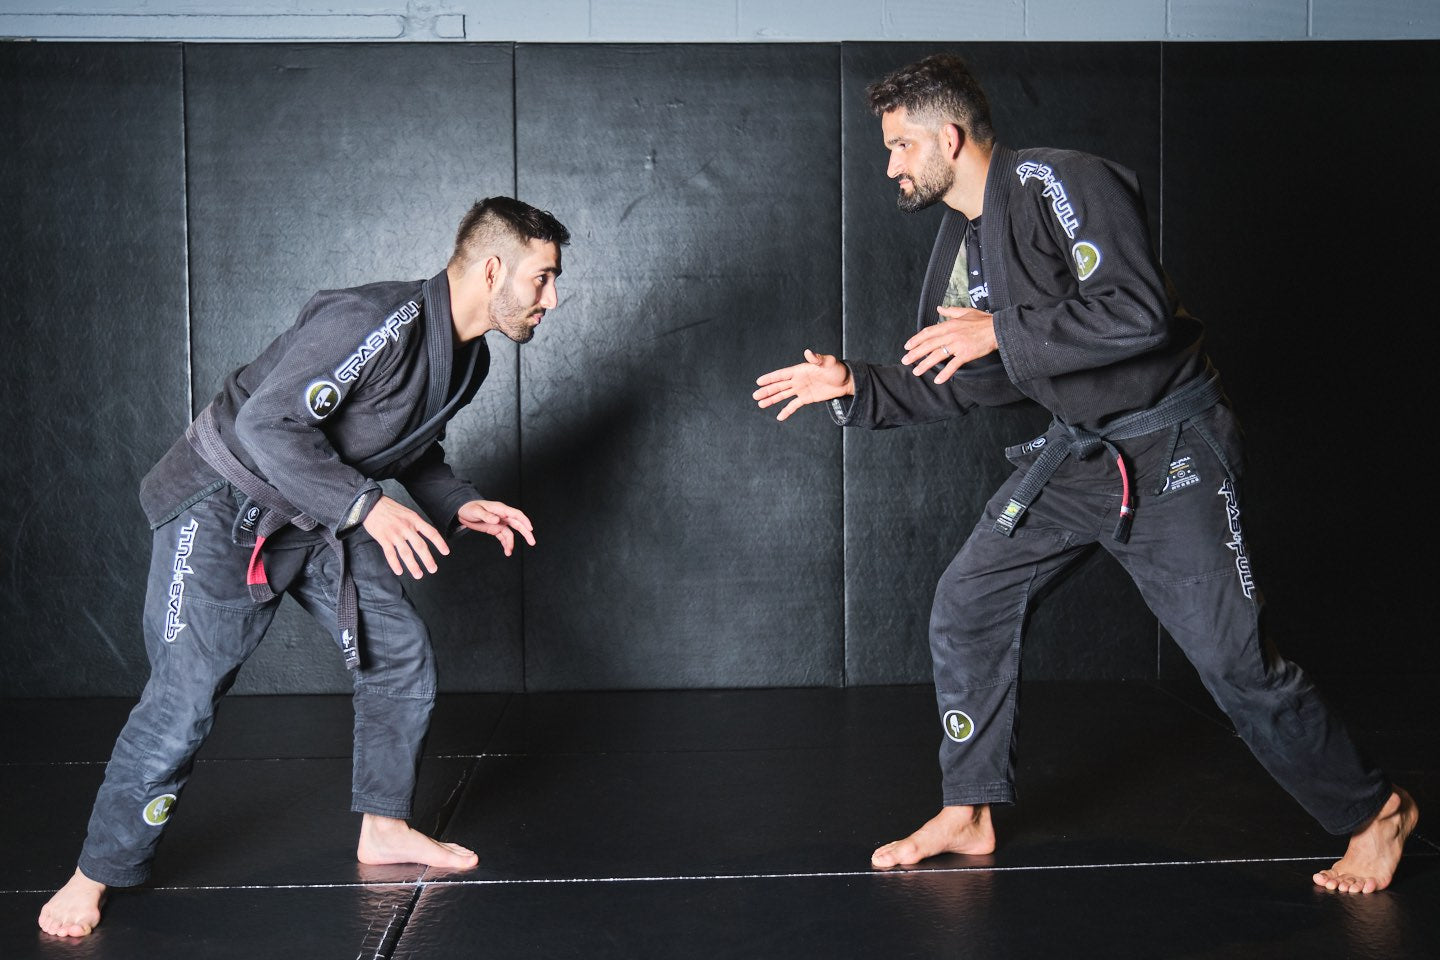 Brazilain Jiu Jitsu Fighters